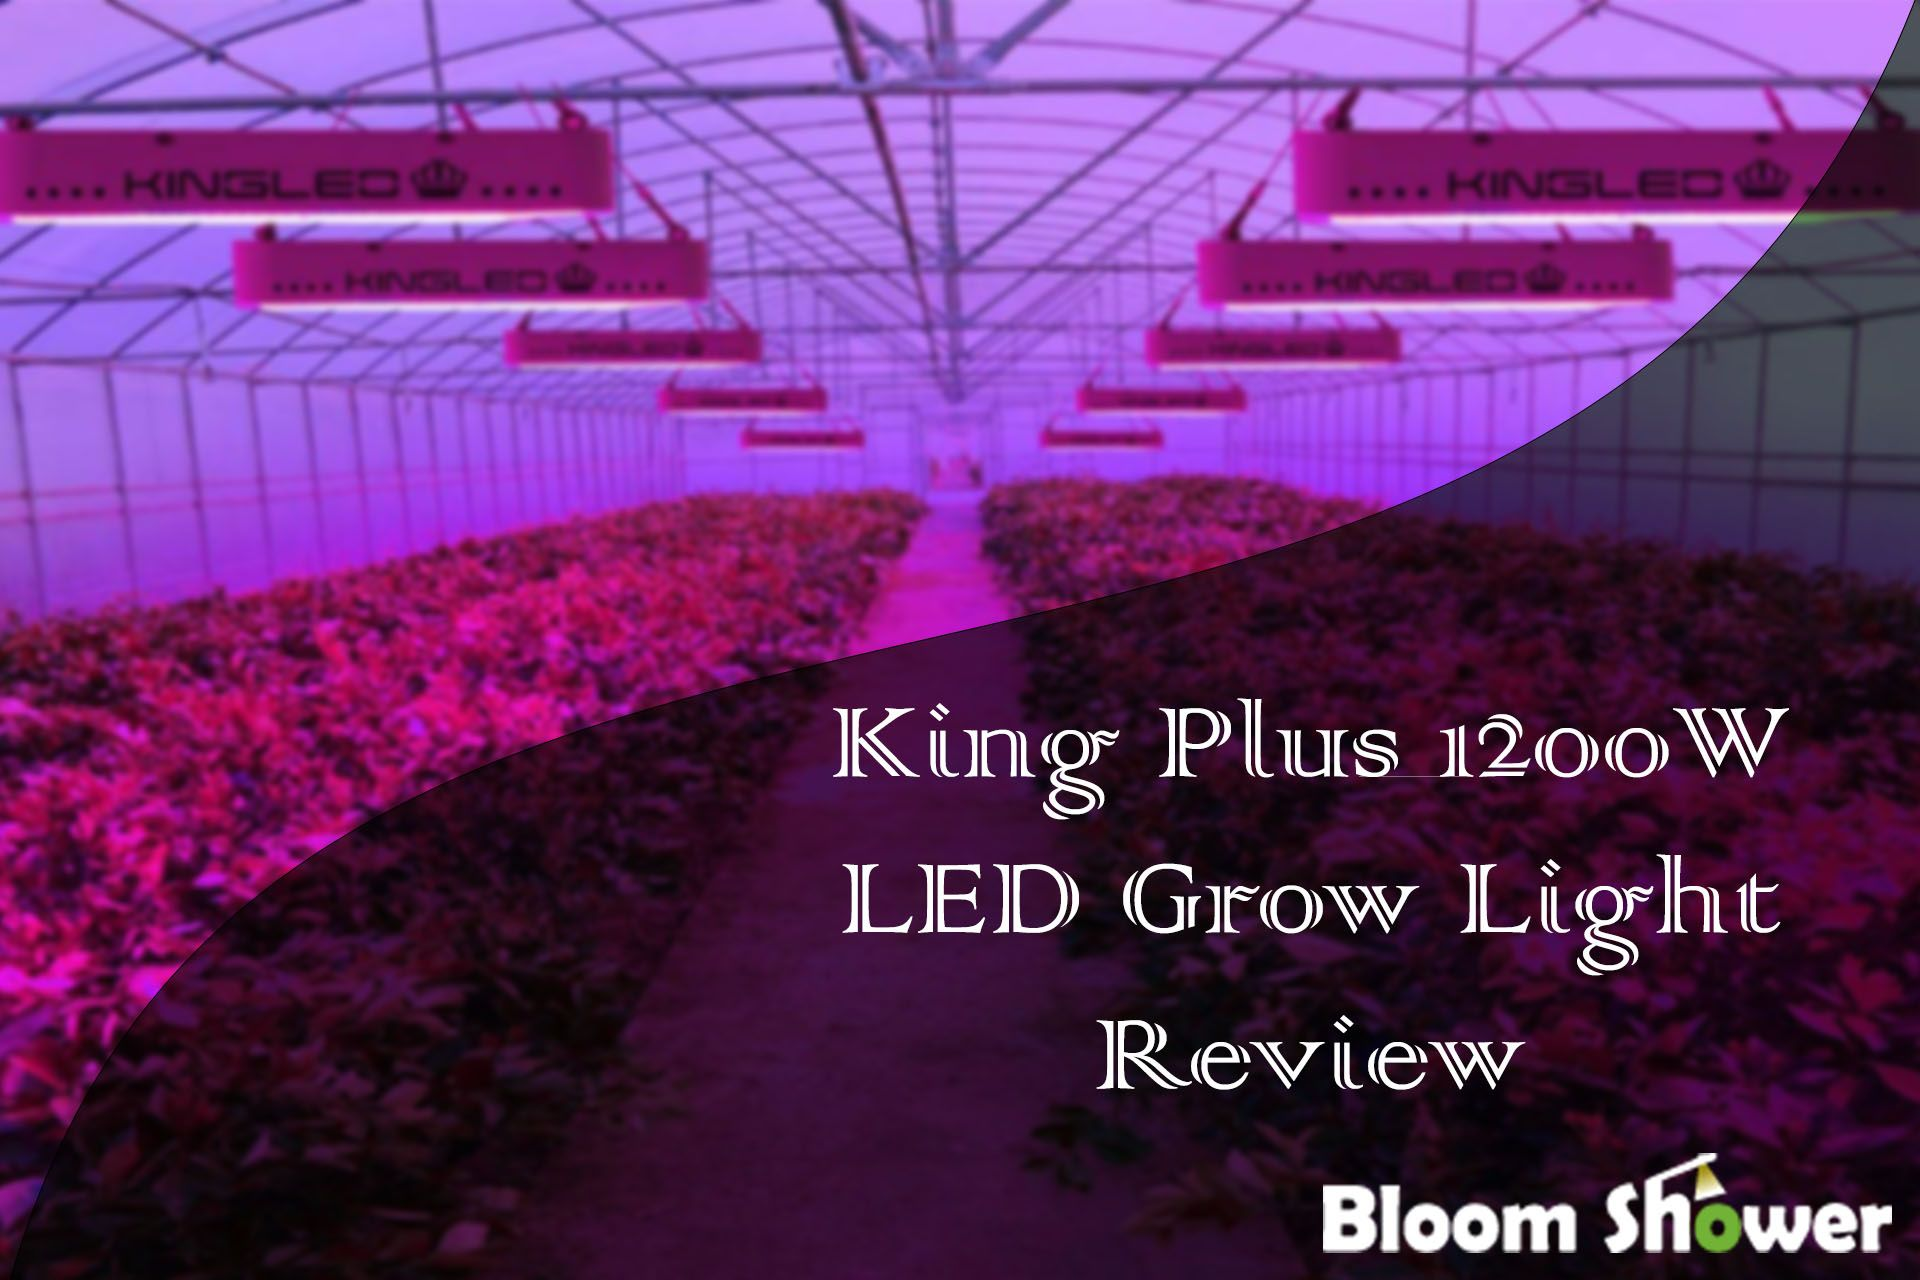 King Plus 1200w Led Review Led Grow Lights Grow Lights Led Grow